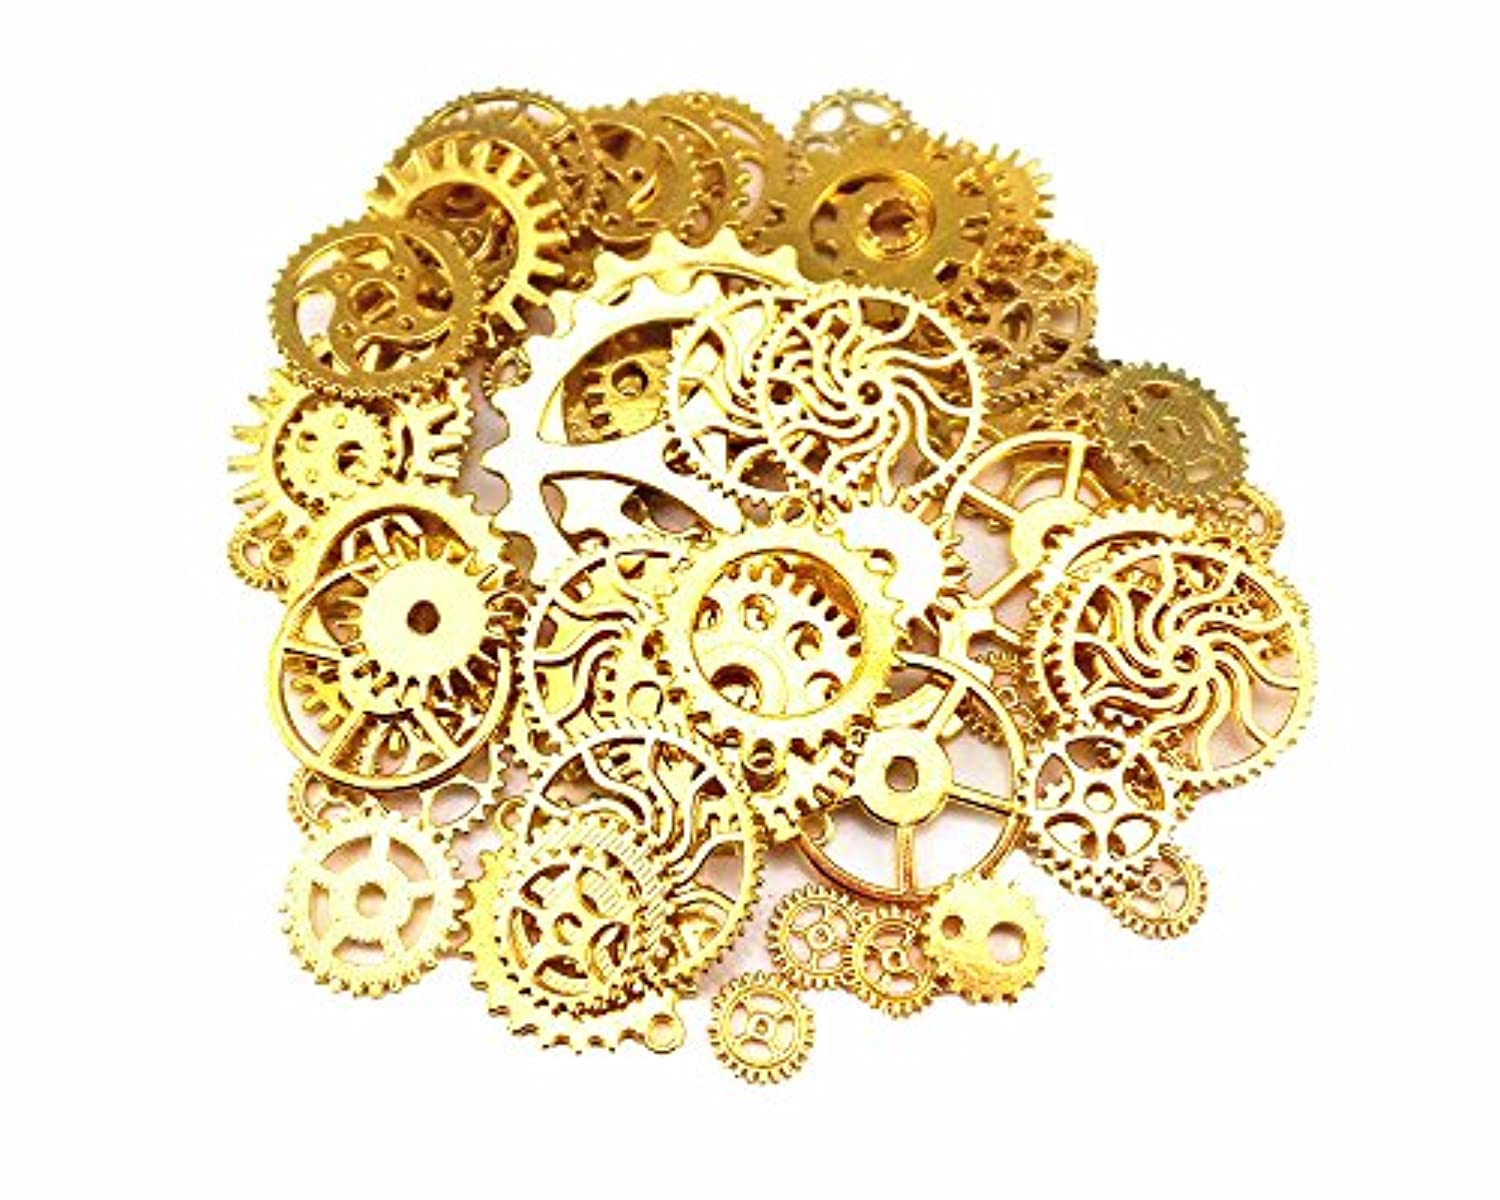 Yueton 100 Gram (Approx 70pcs) Antique Steampunk Gears Charms Clock Watch Wheel Gear for Crafting (Golden)